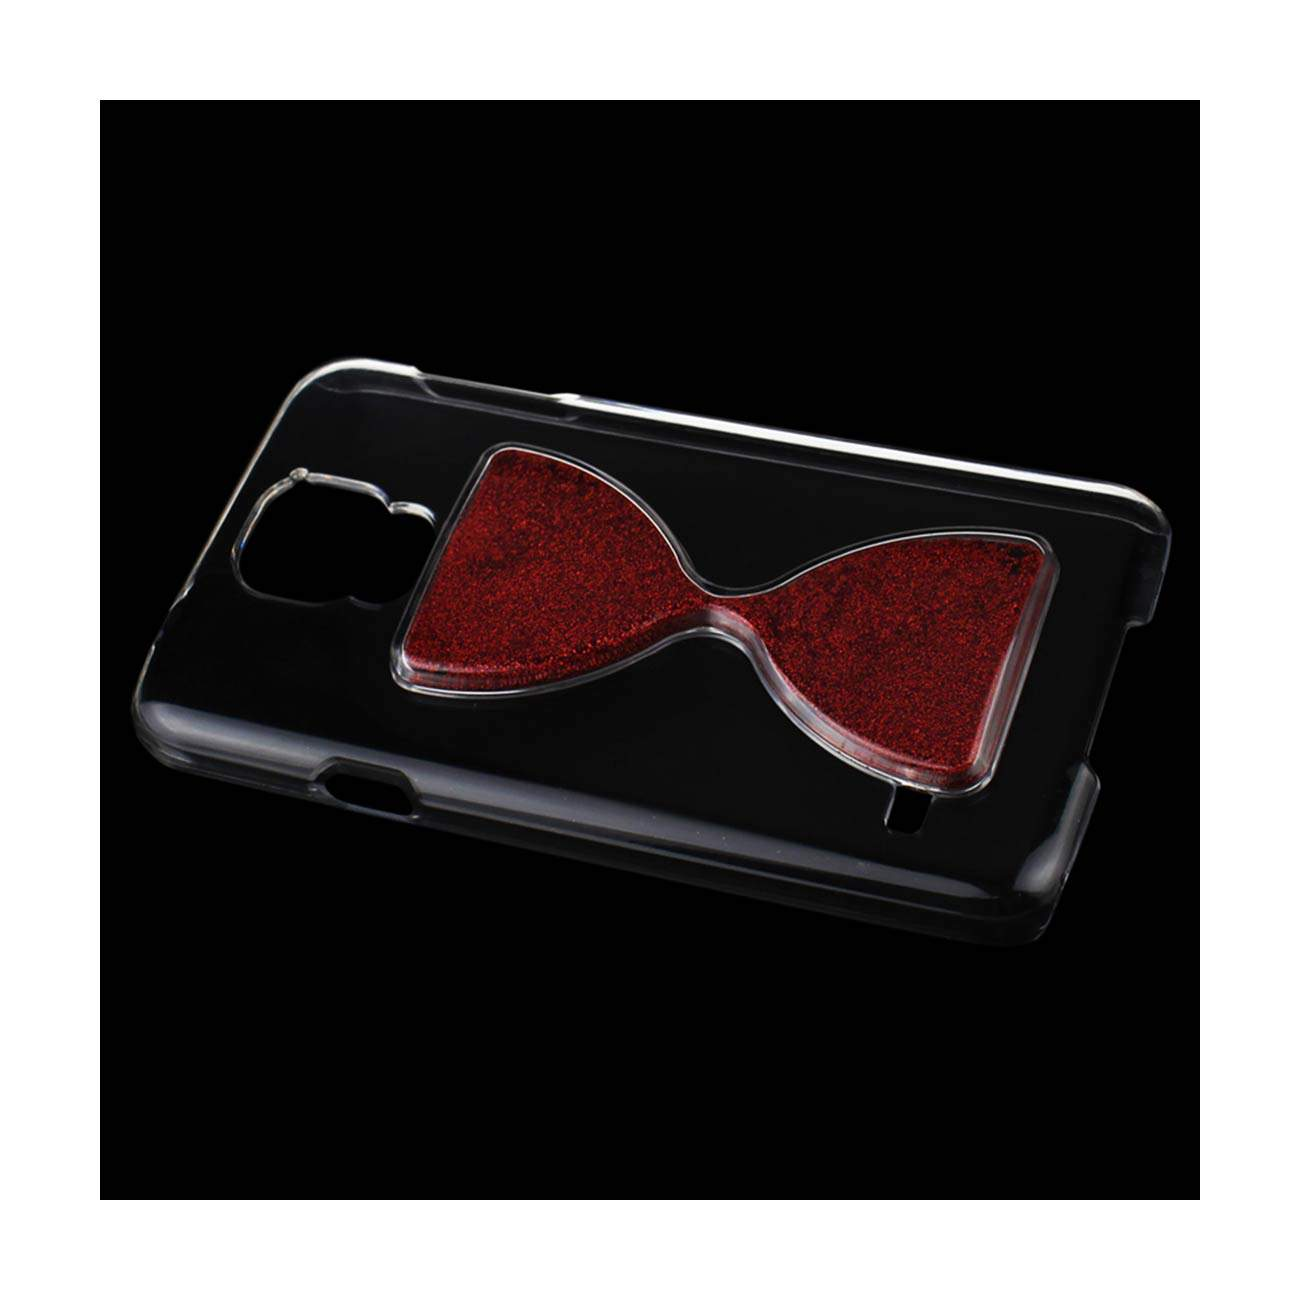 SAMSUNG GALAXY S5 3D SAND CLOCK CLEAR CASE IN RED